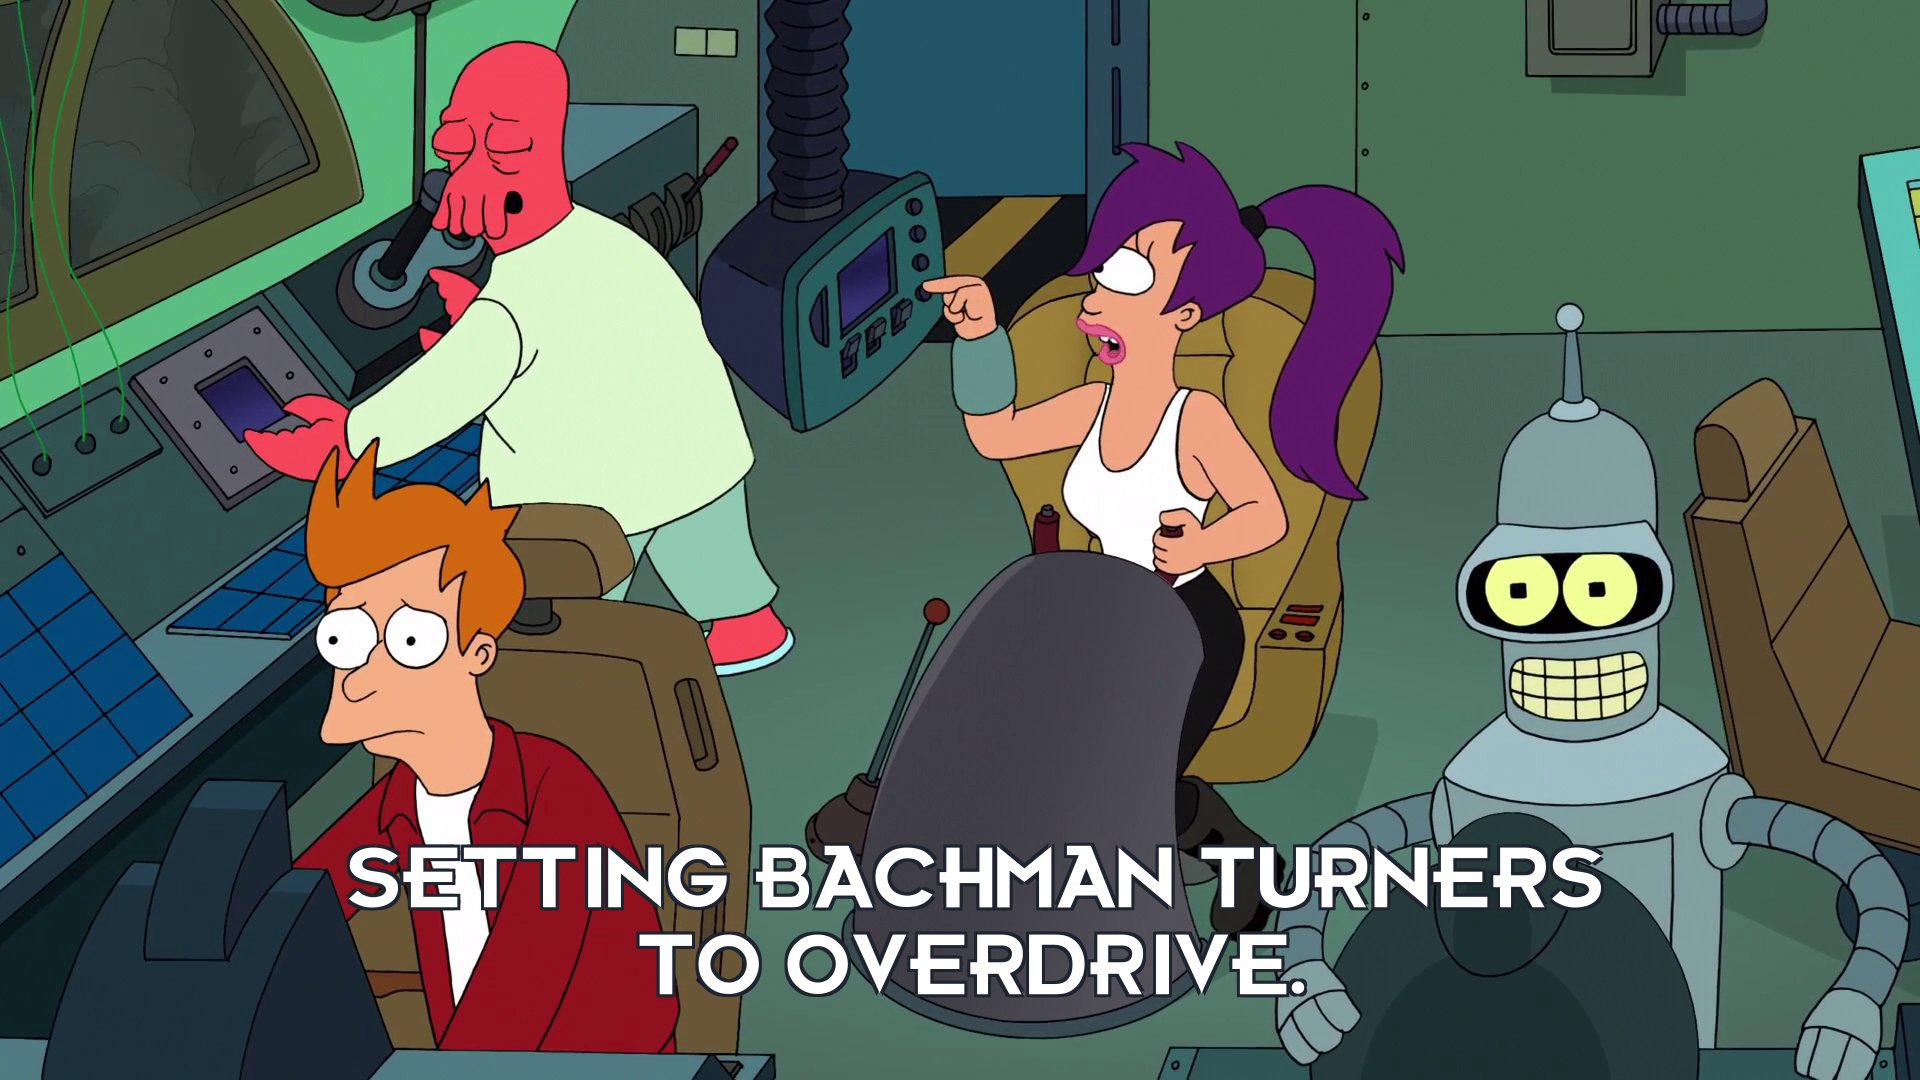 Turanga Leela: Setting Bachman turners to overdrive.